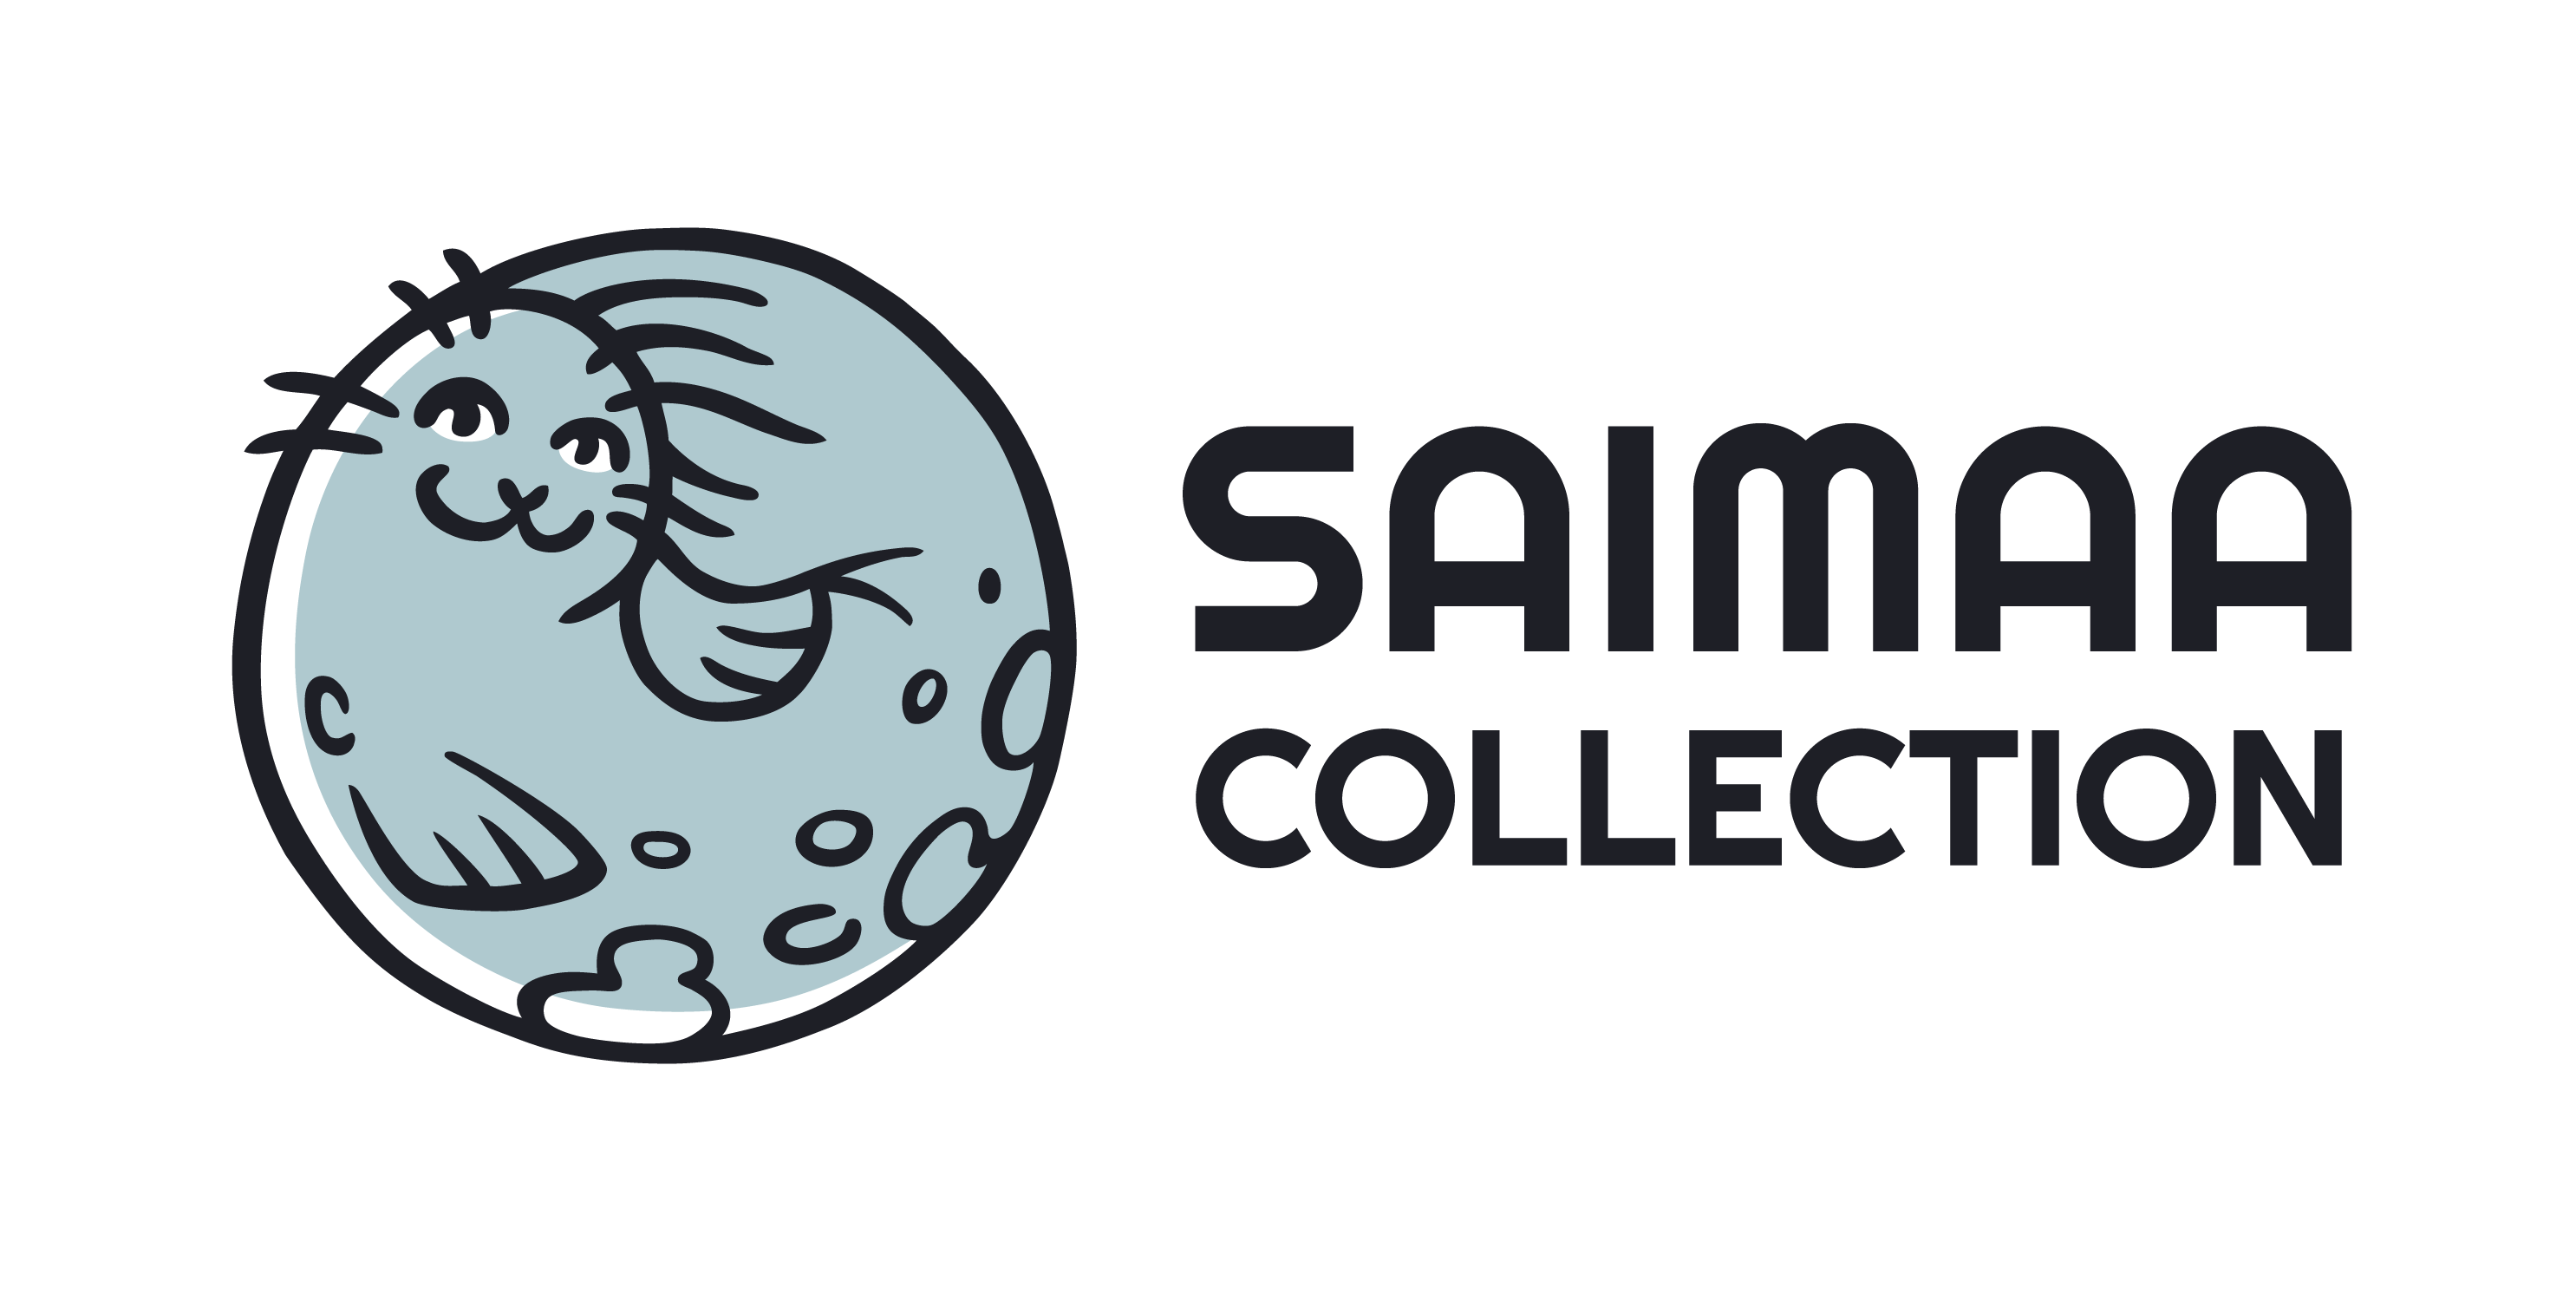 Saimaa collection